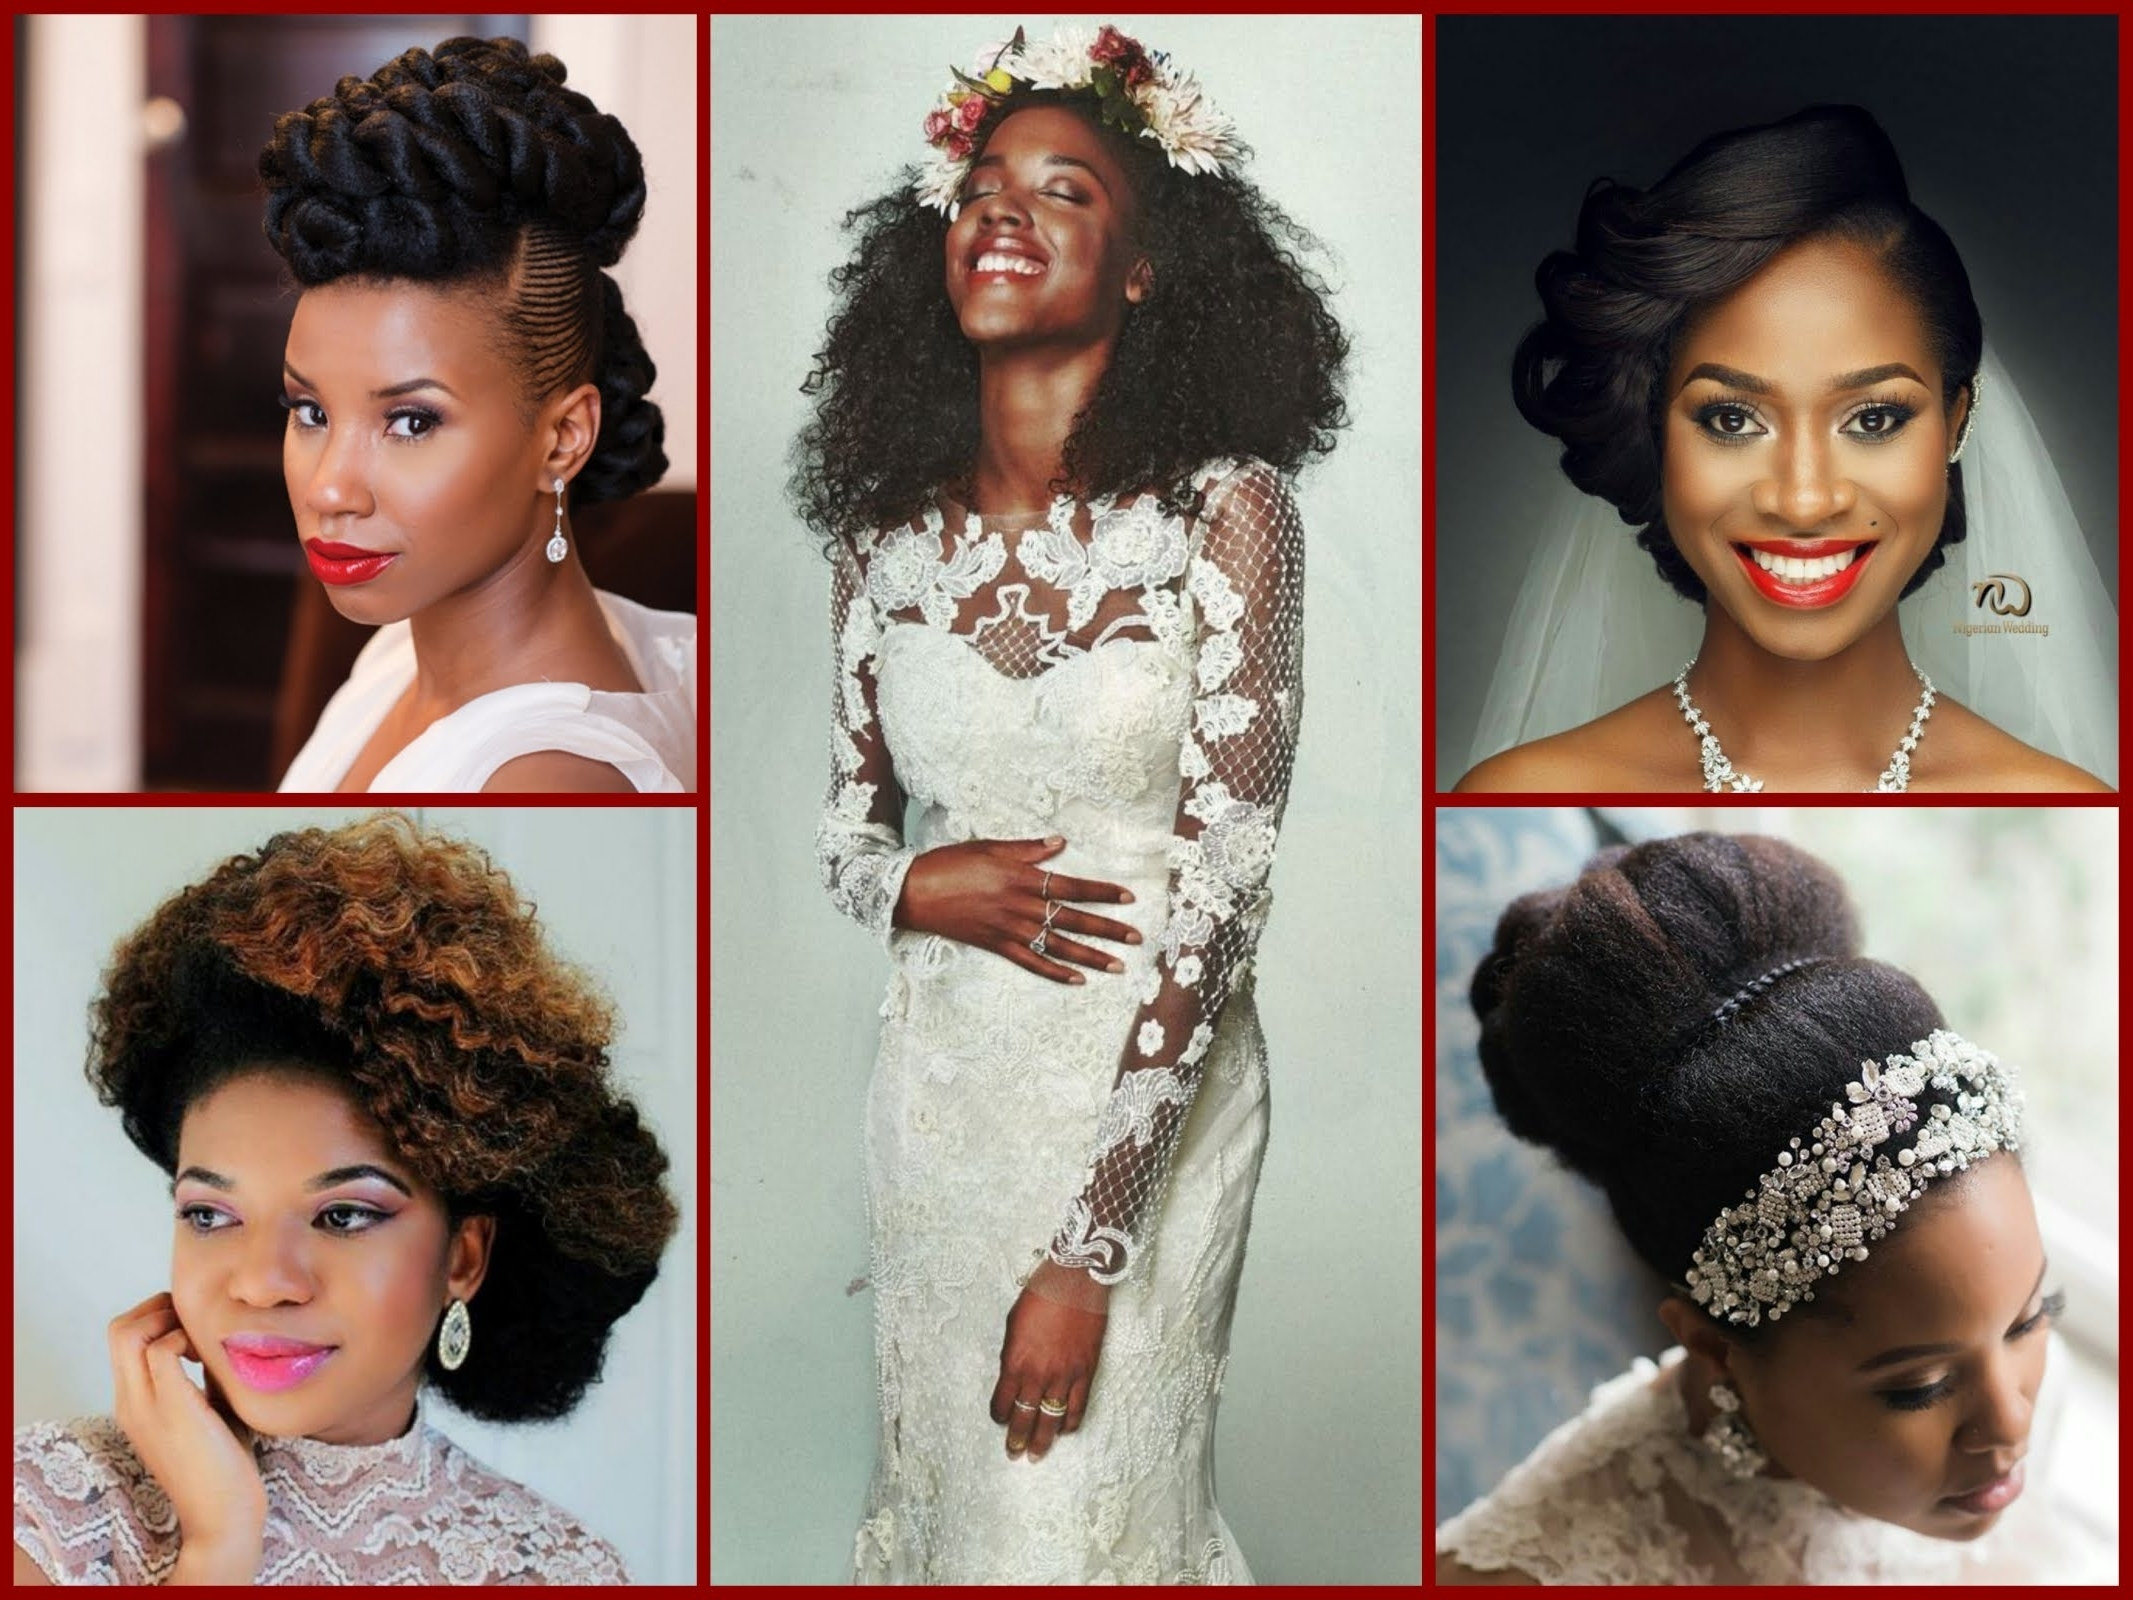 Current Wedding Hairstyles For Short Afro Hair Pertaining To Black Women Wedding Hairstyles – 40 Beautiful Updos – Youtube (View 3 of 15)